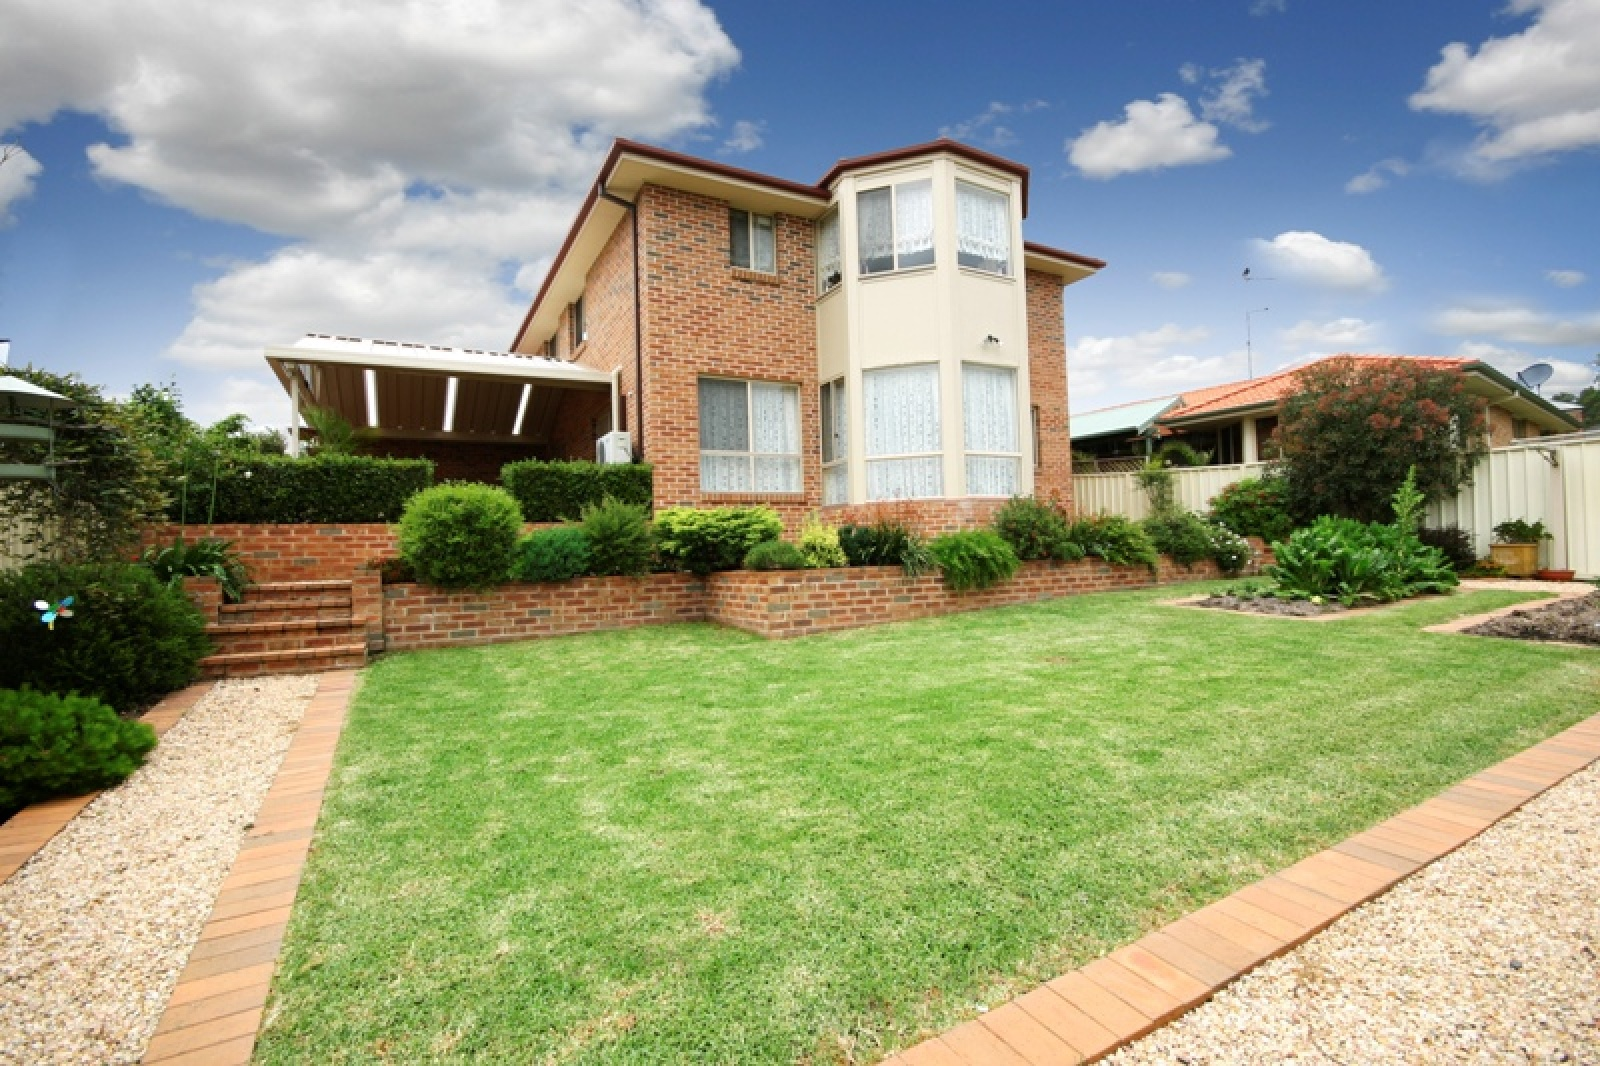 28 Henry Place,Narellan Vale,NSW,5 Bedrooms Bedrooms,3 BathroomsBathrooms,House,Henry Place,1288